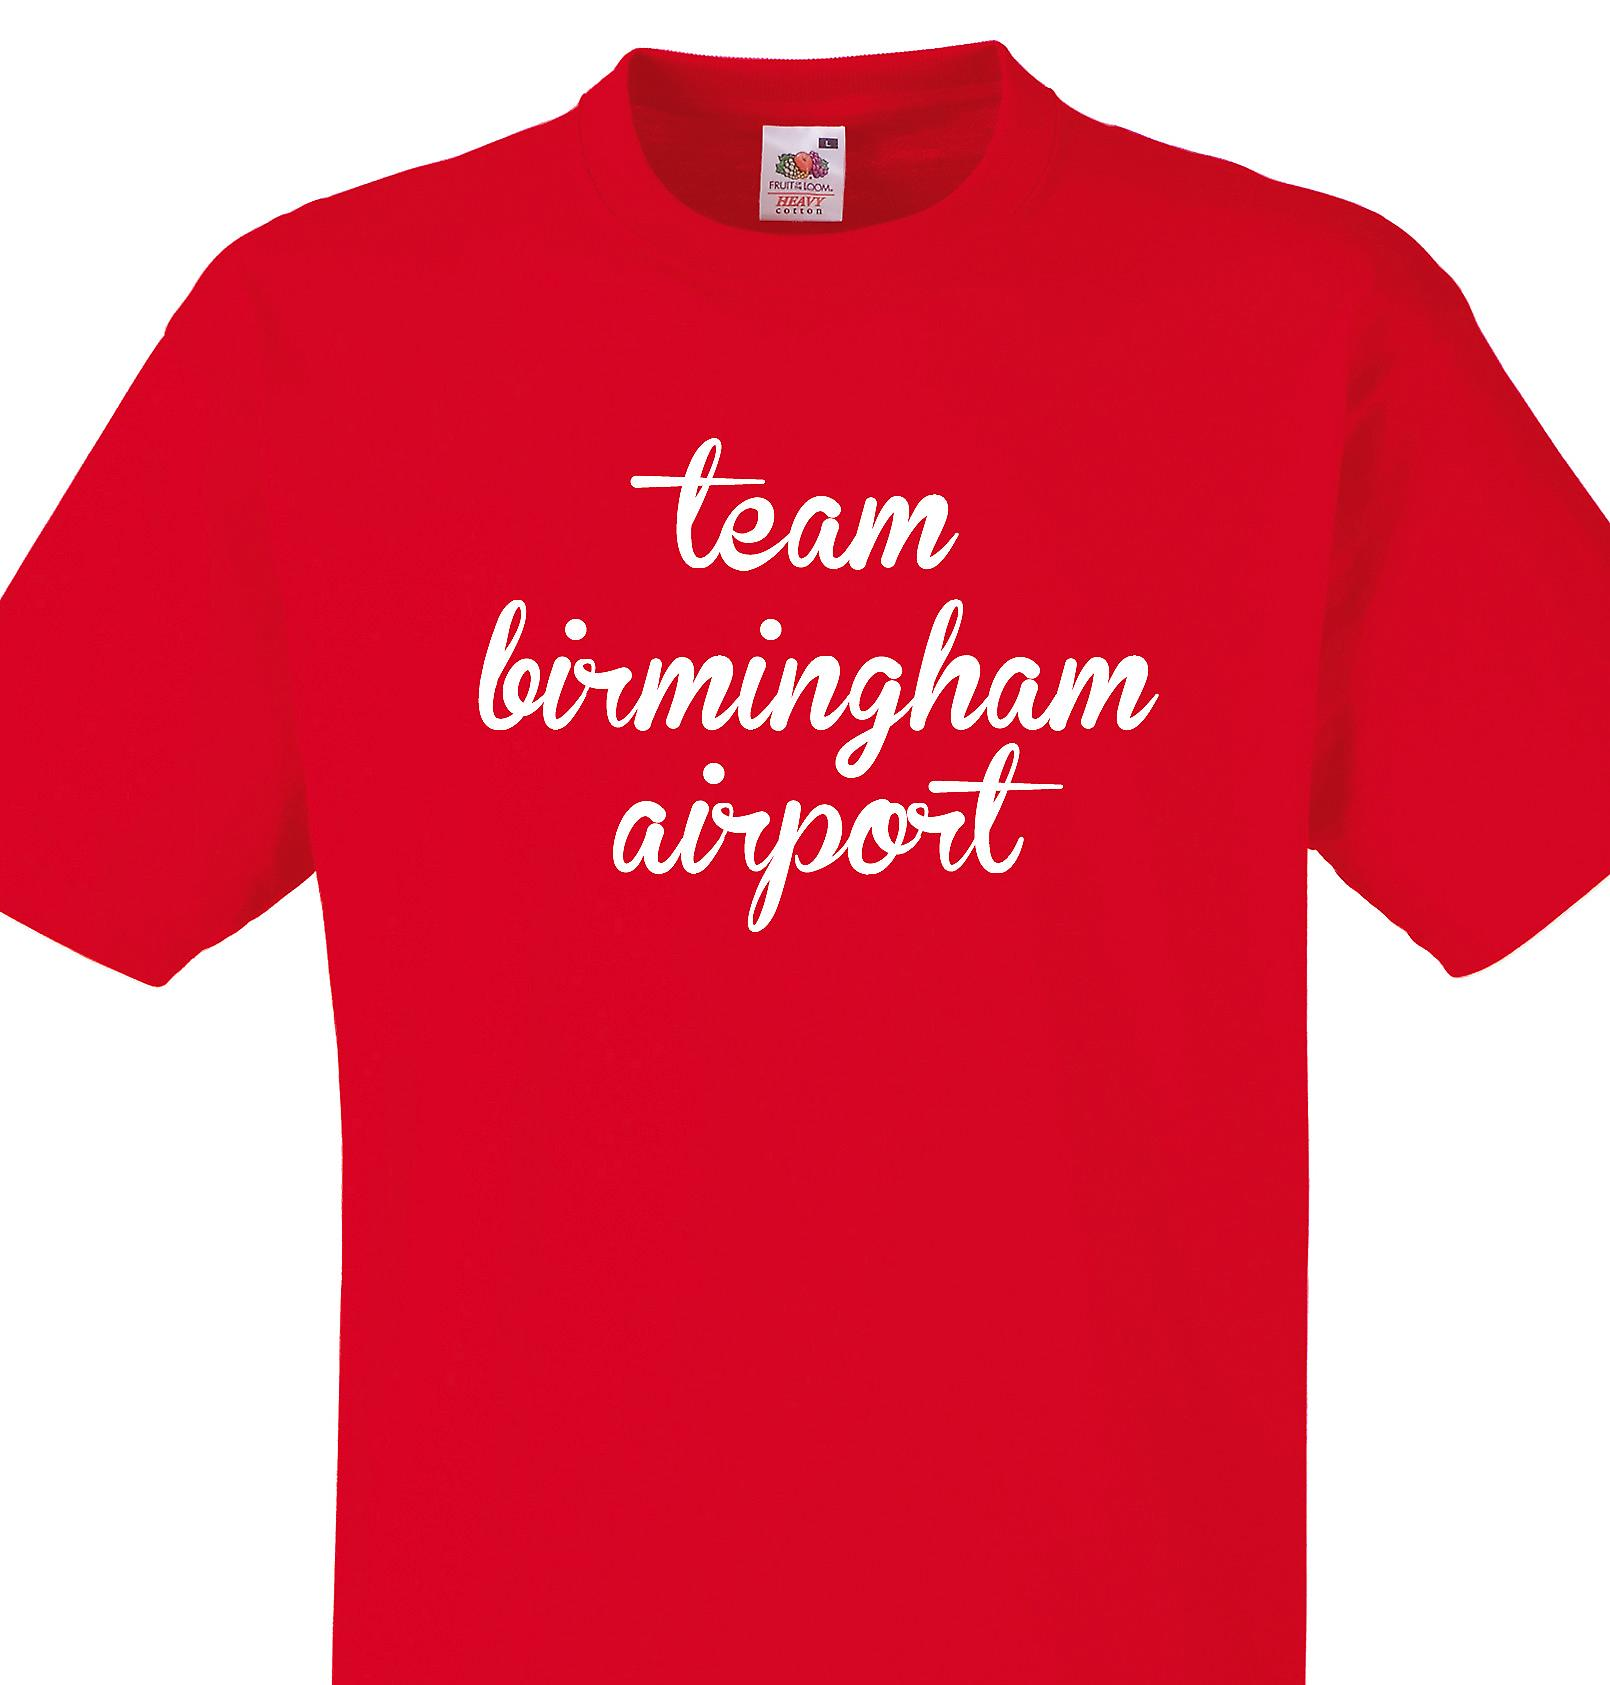 Team Birmingham airport Red T shirt